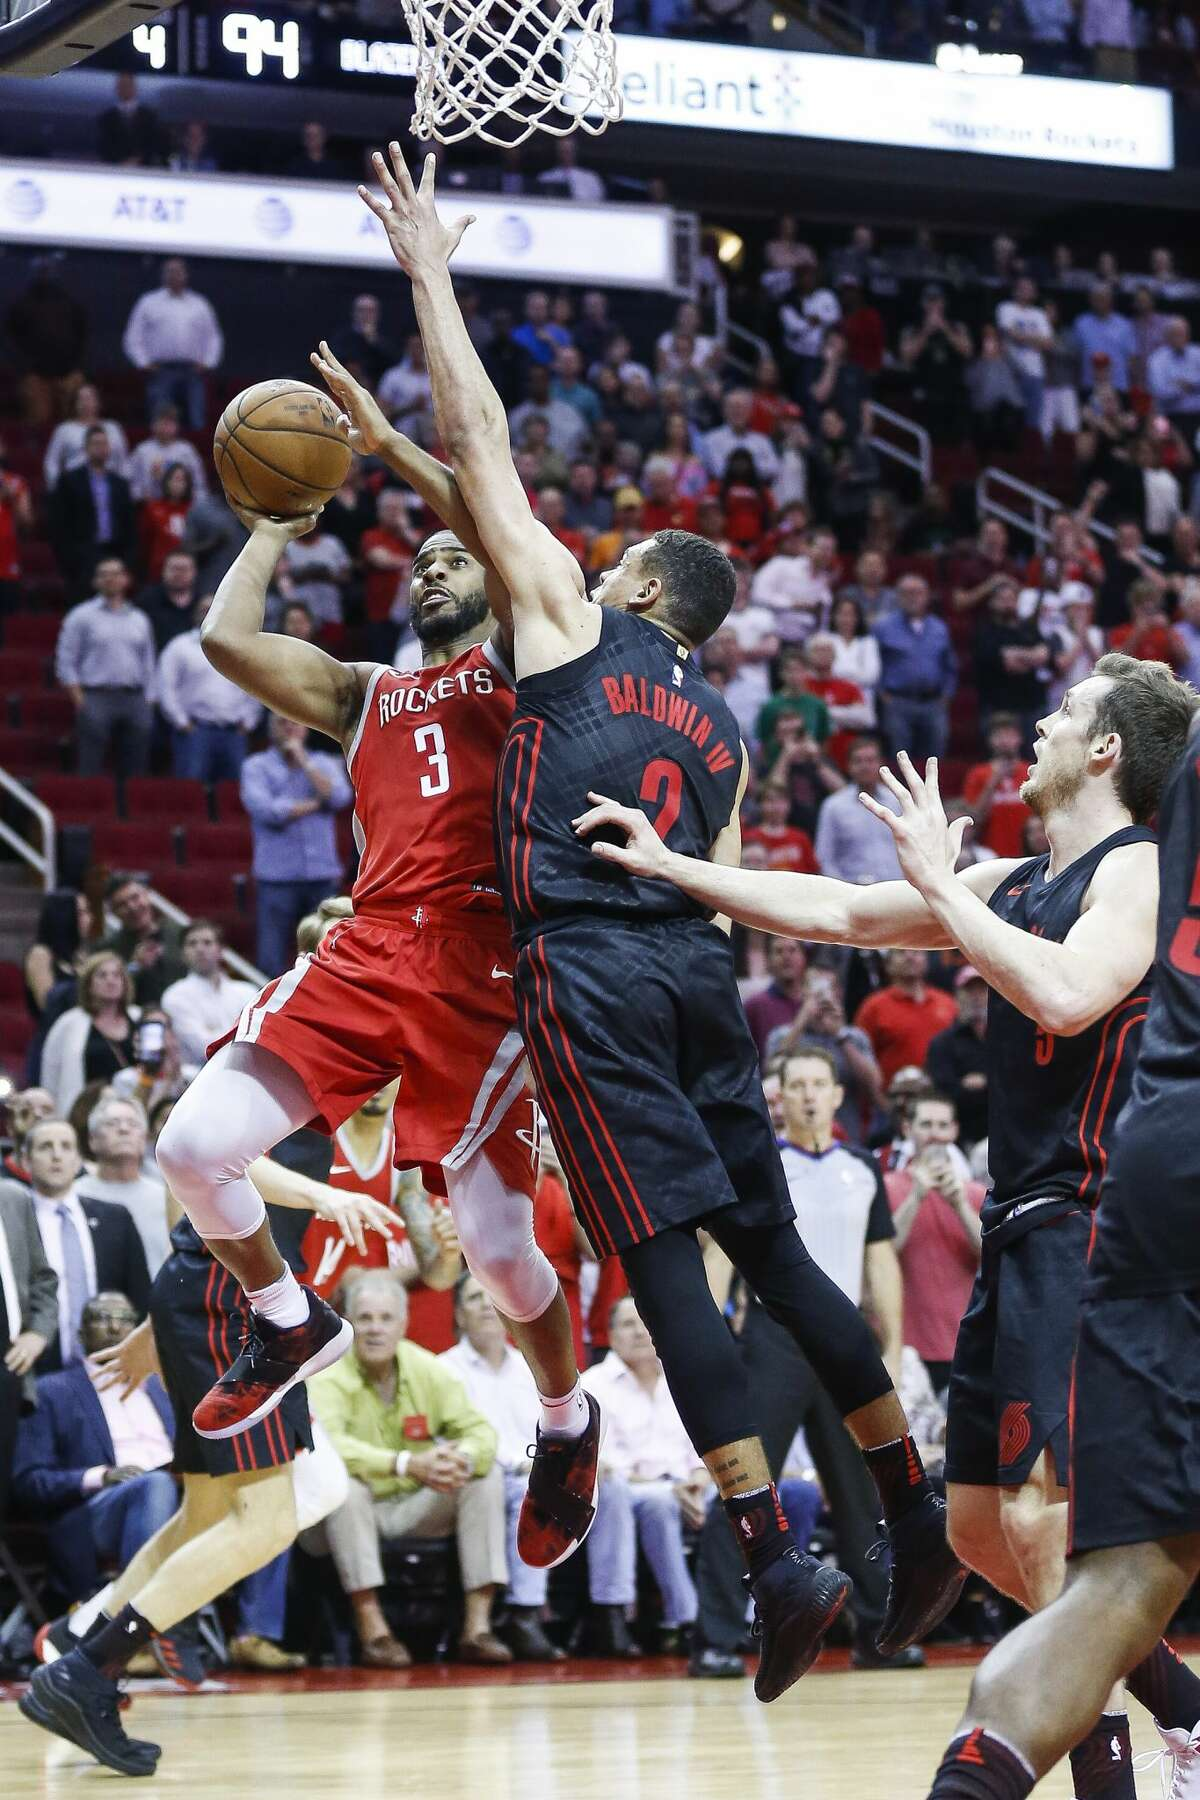 Houston Rockets guard Chris Paul (3) hits the game winning shot over Portland Trail Blazers guard Wade Baldwin IV (2) with seconds left as the Houston Rockets beat the Portland Trail Blazers 96-94 at the Toyota Center Thursday, April 5, 2018 in Houston. (Michael Ciaglo / Houston Chronicle)